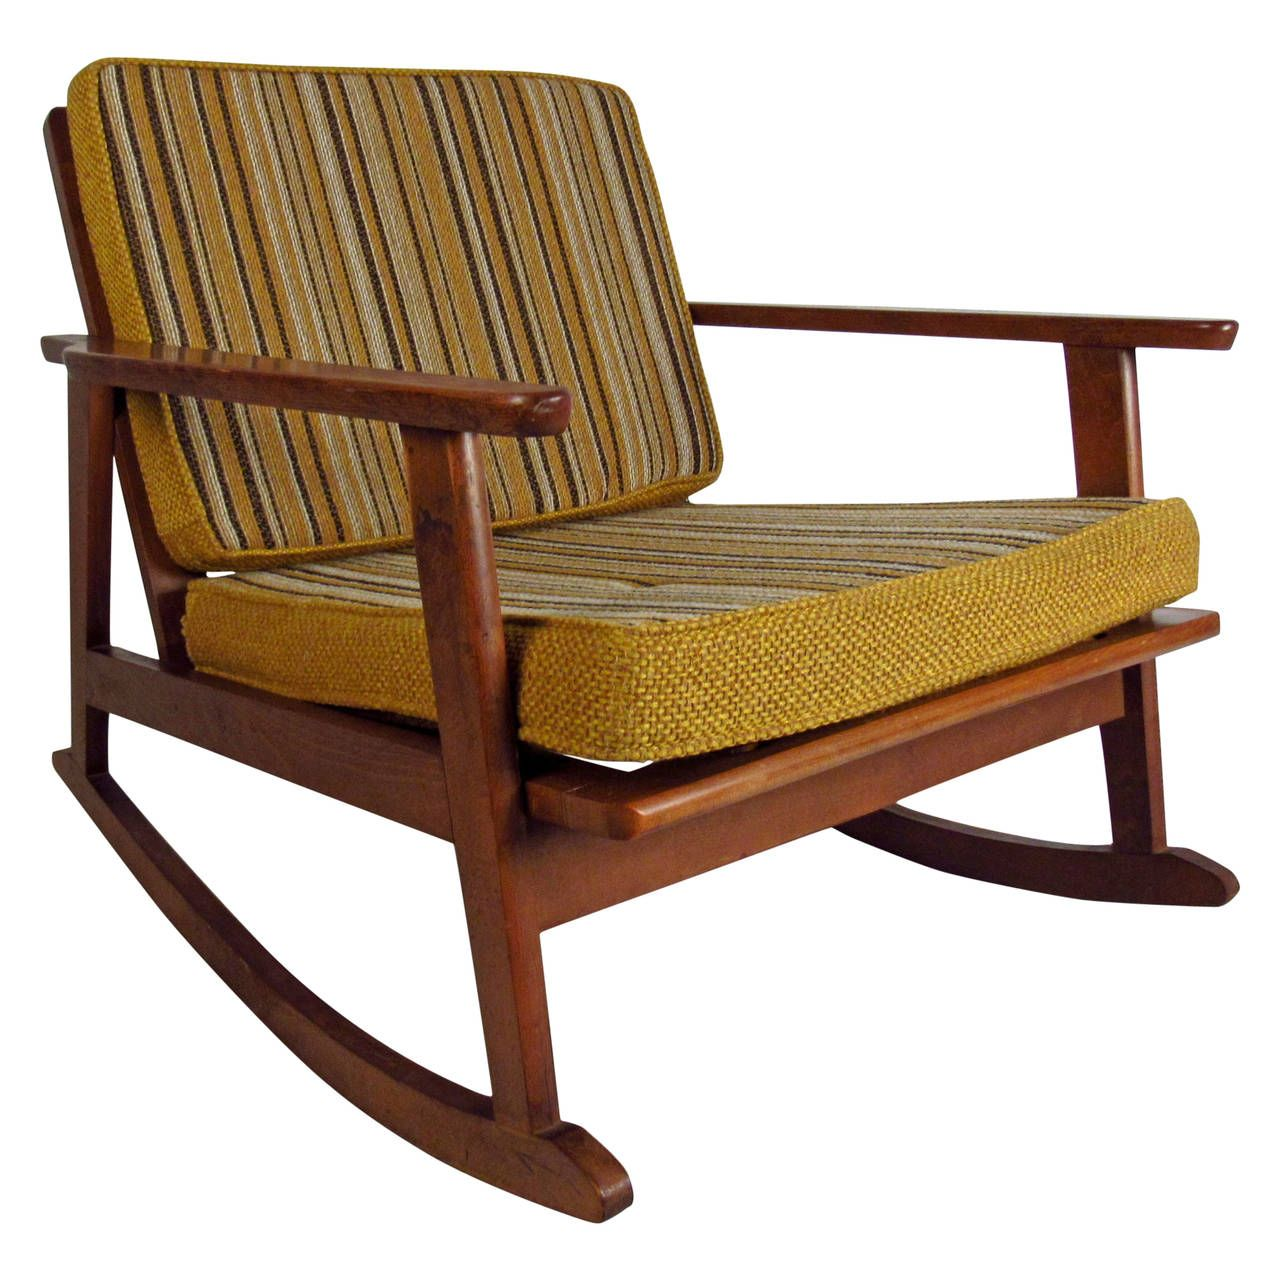 Mid Century Modern Walnut Rocker With Striped Cushions From A Unique Collection Of Antique Mid Century Rocker Modern Rocking Chair Mid Century Rocking Chair